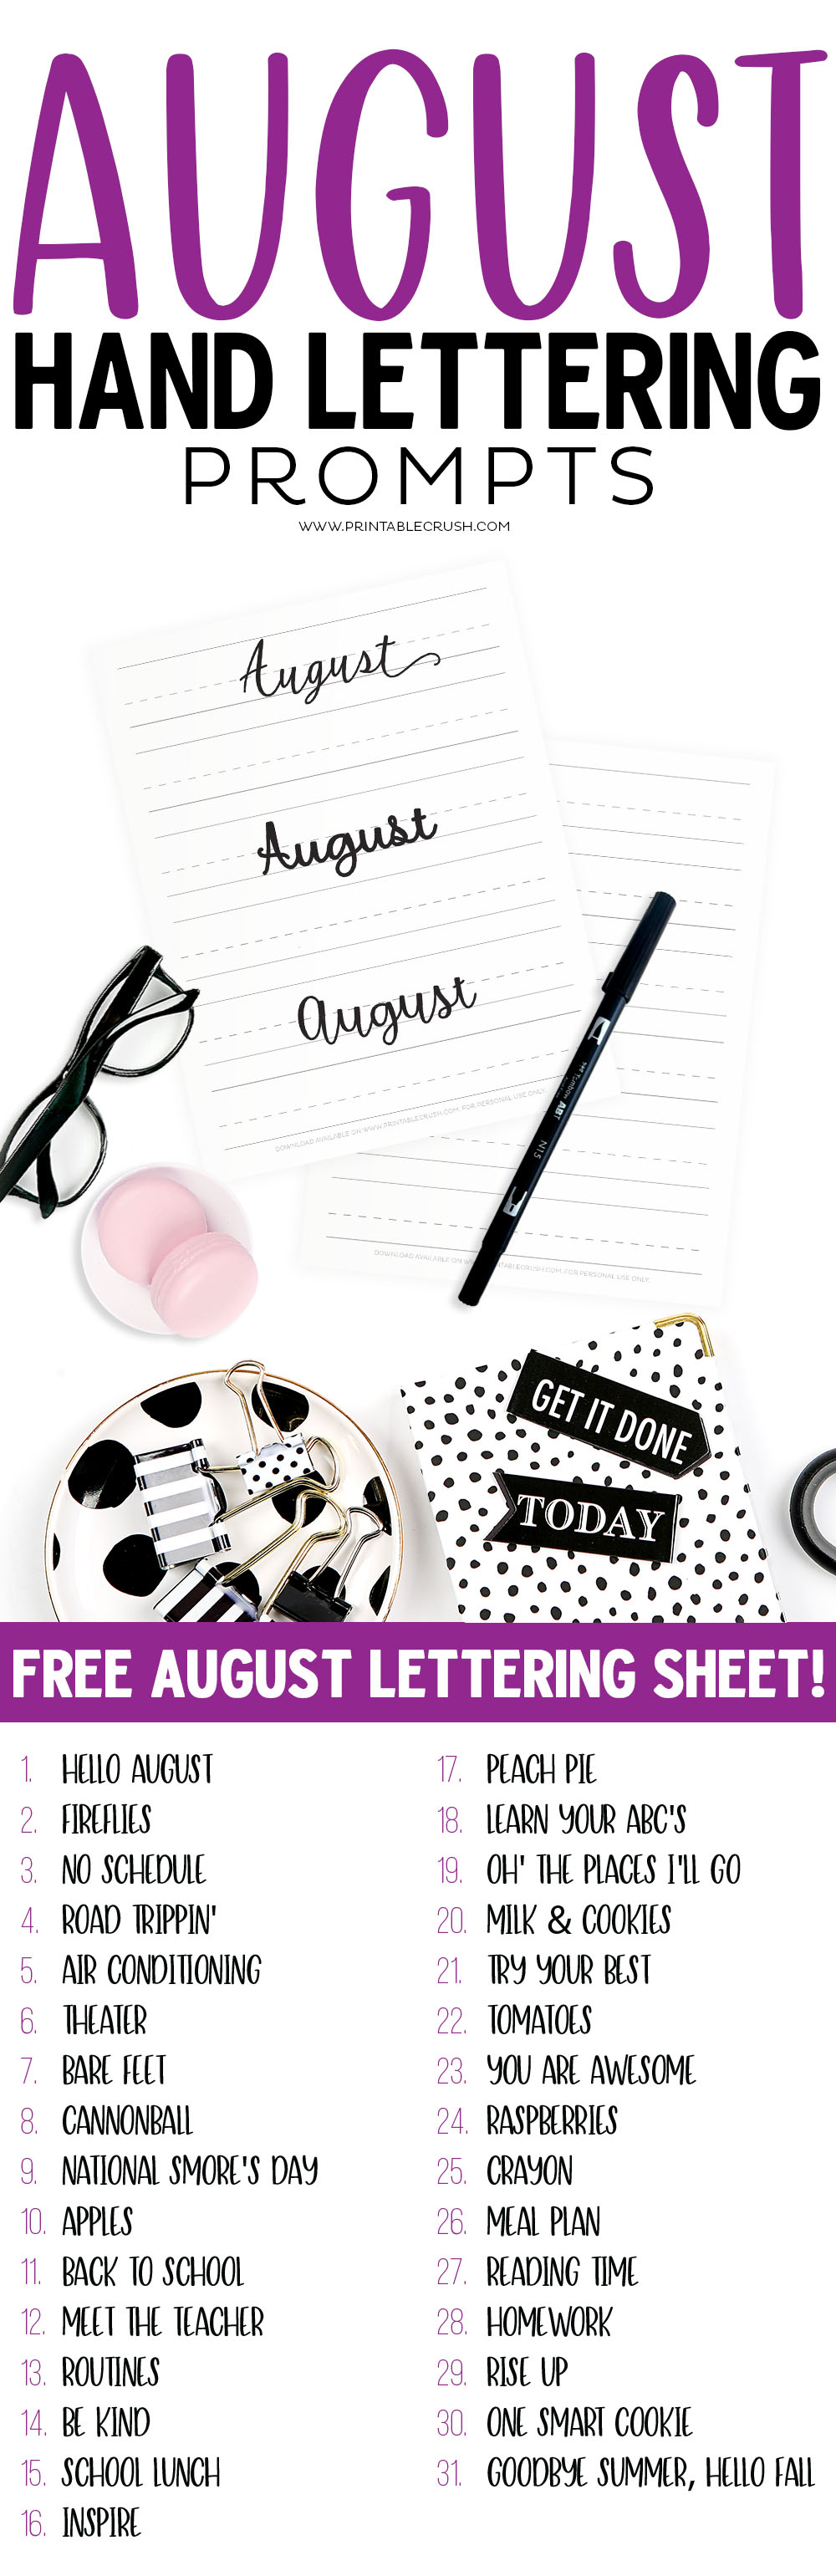 Get 31 AUGUST Hand Lettering Prompts plus a FREE practice sheet in this blog series to improve your hand lettering skills. #handlettering #tombowpro